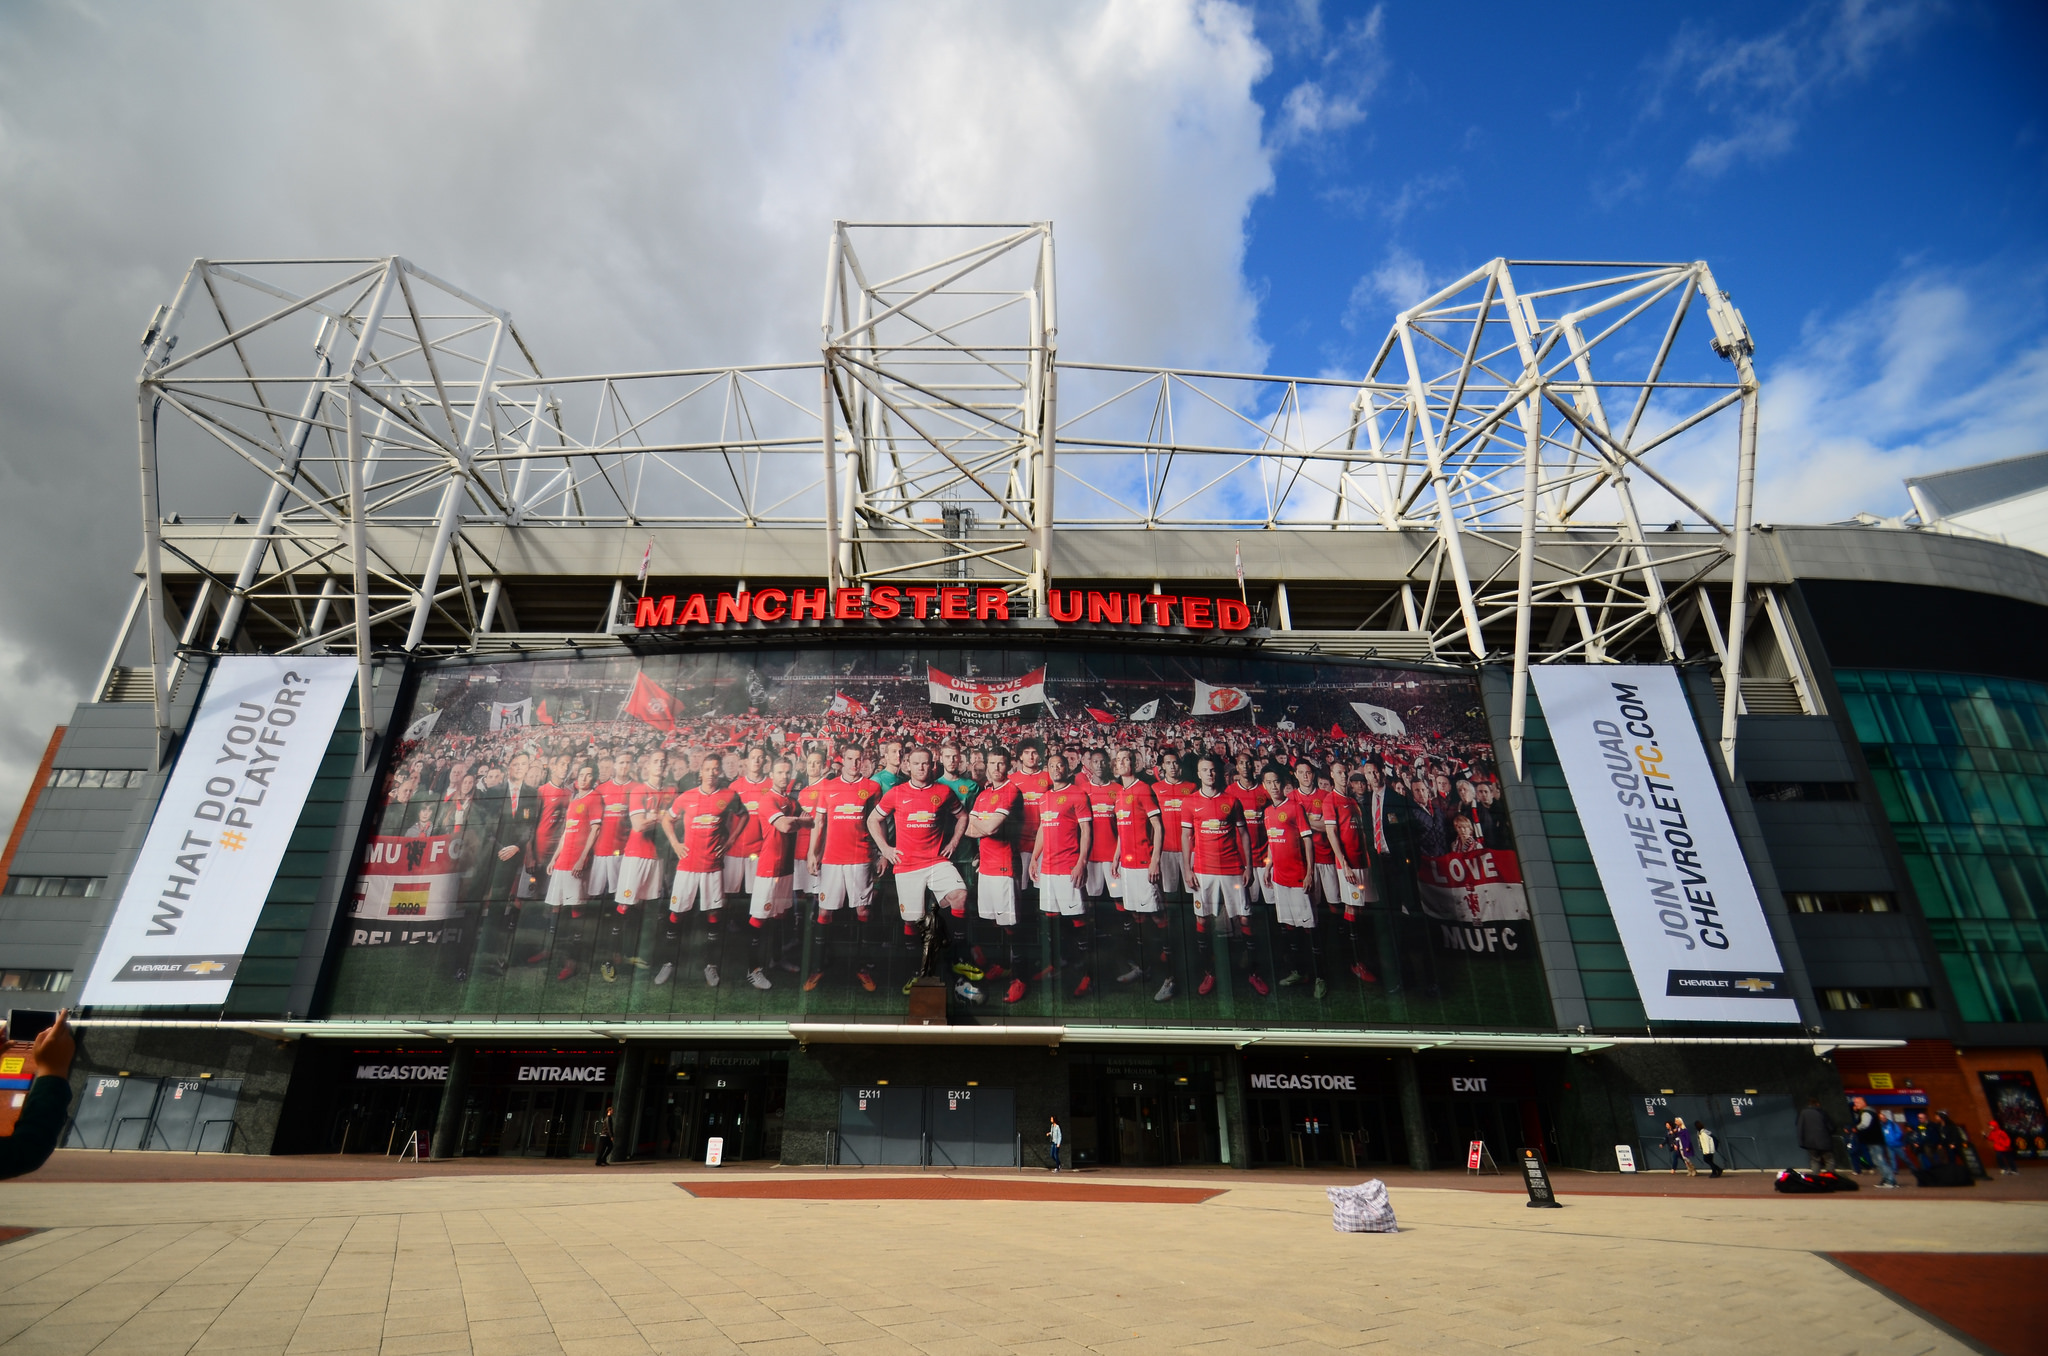 Wallpaper Manchester United Hd Old Trafford Stadium In Manchester Thousand Wonders